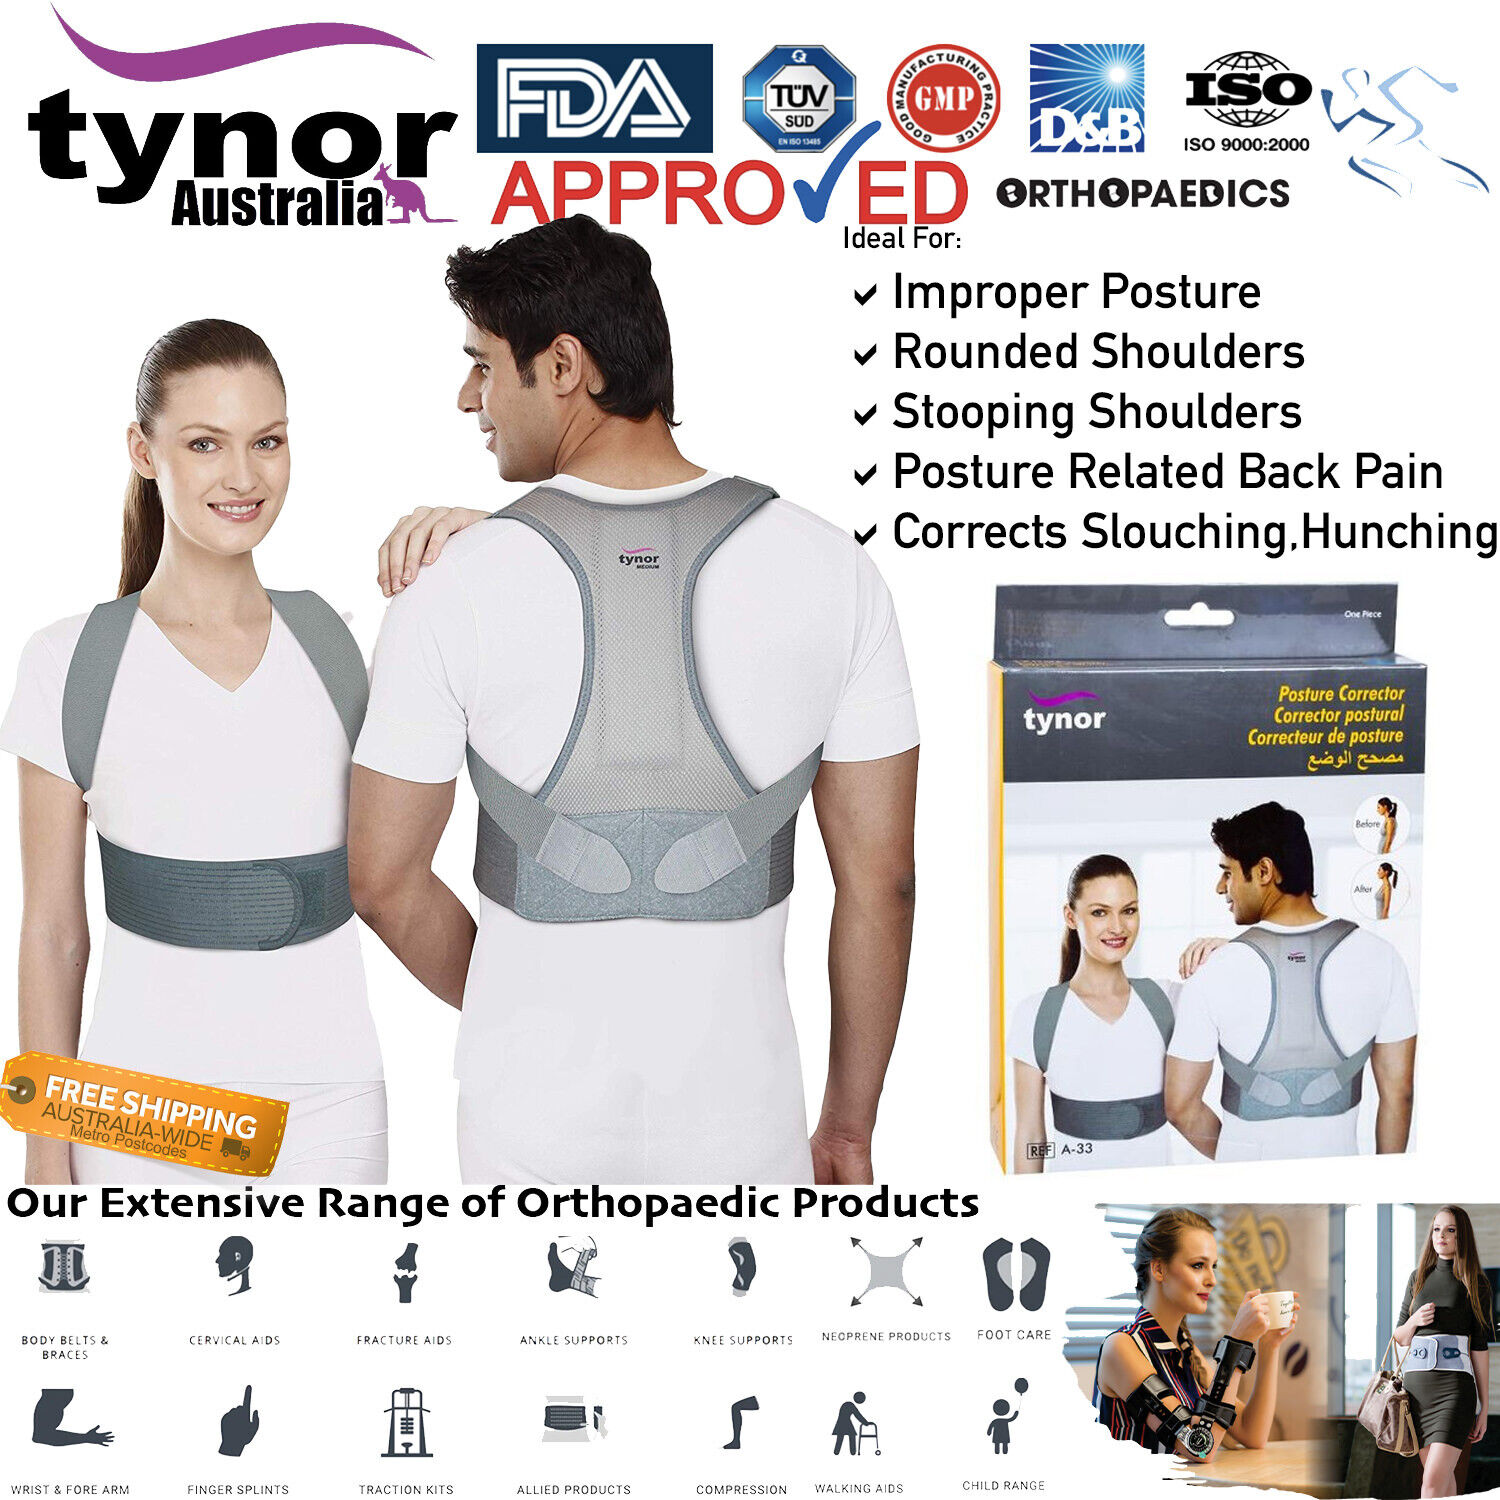 premium posture corrector for back slouching hunching